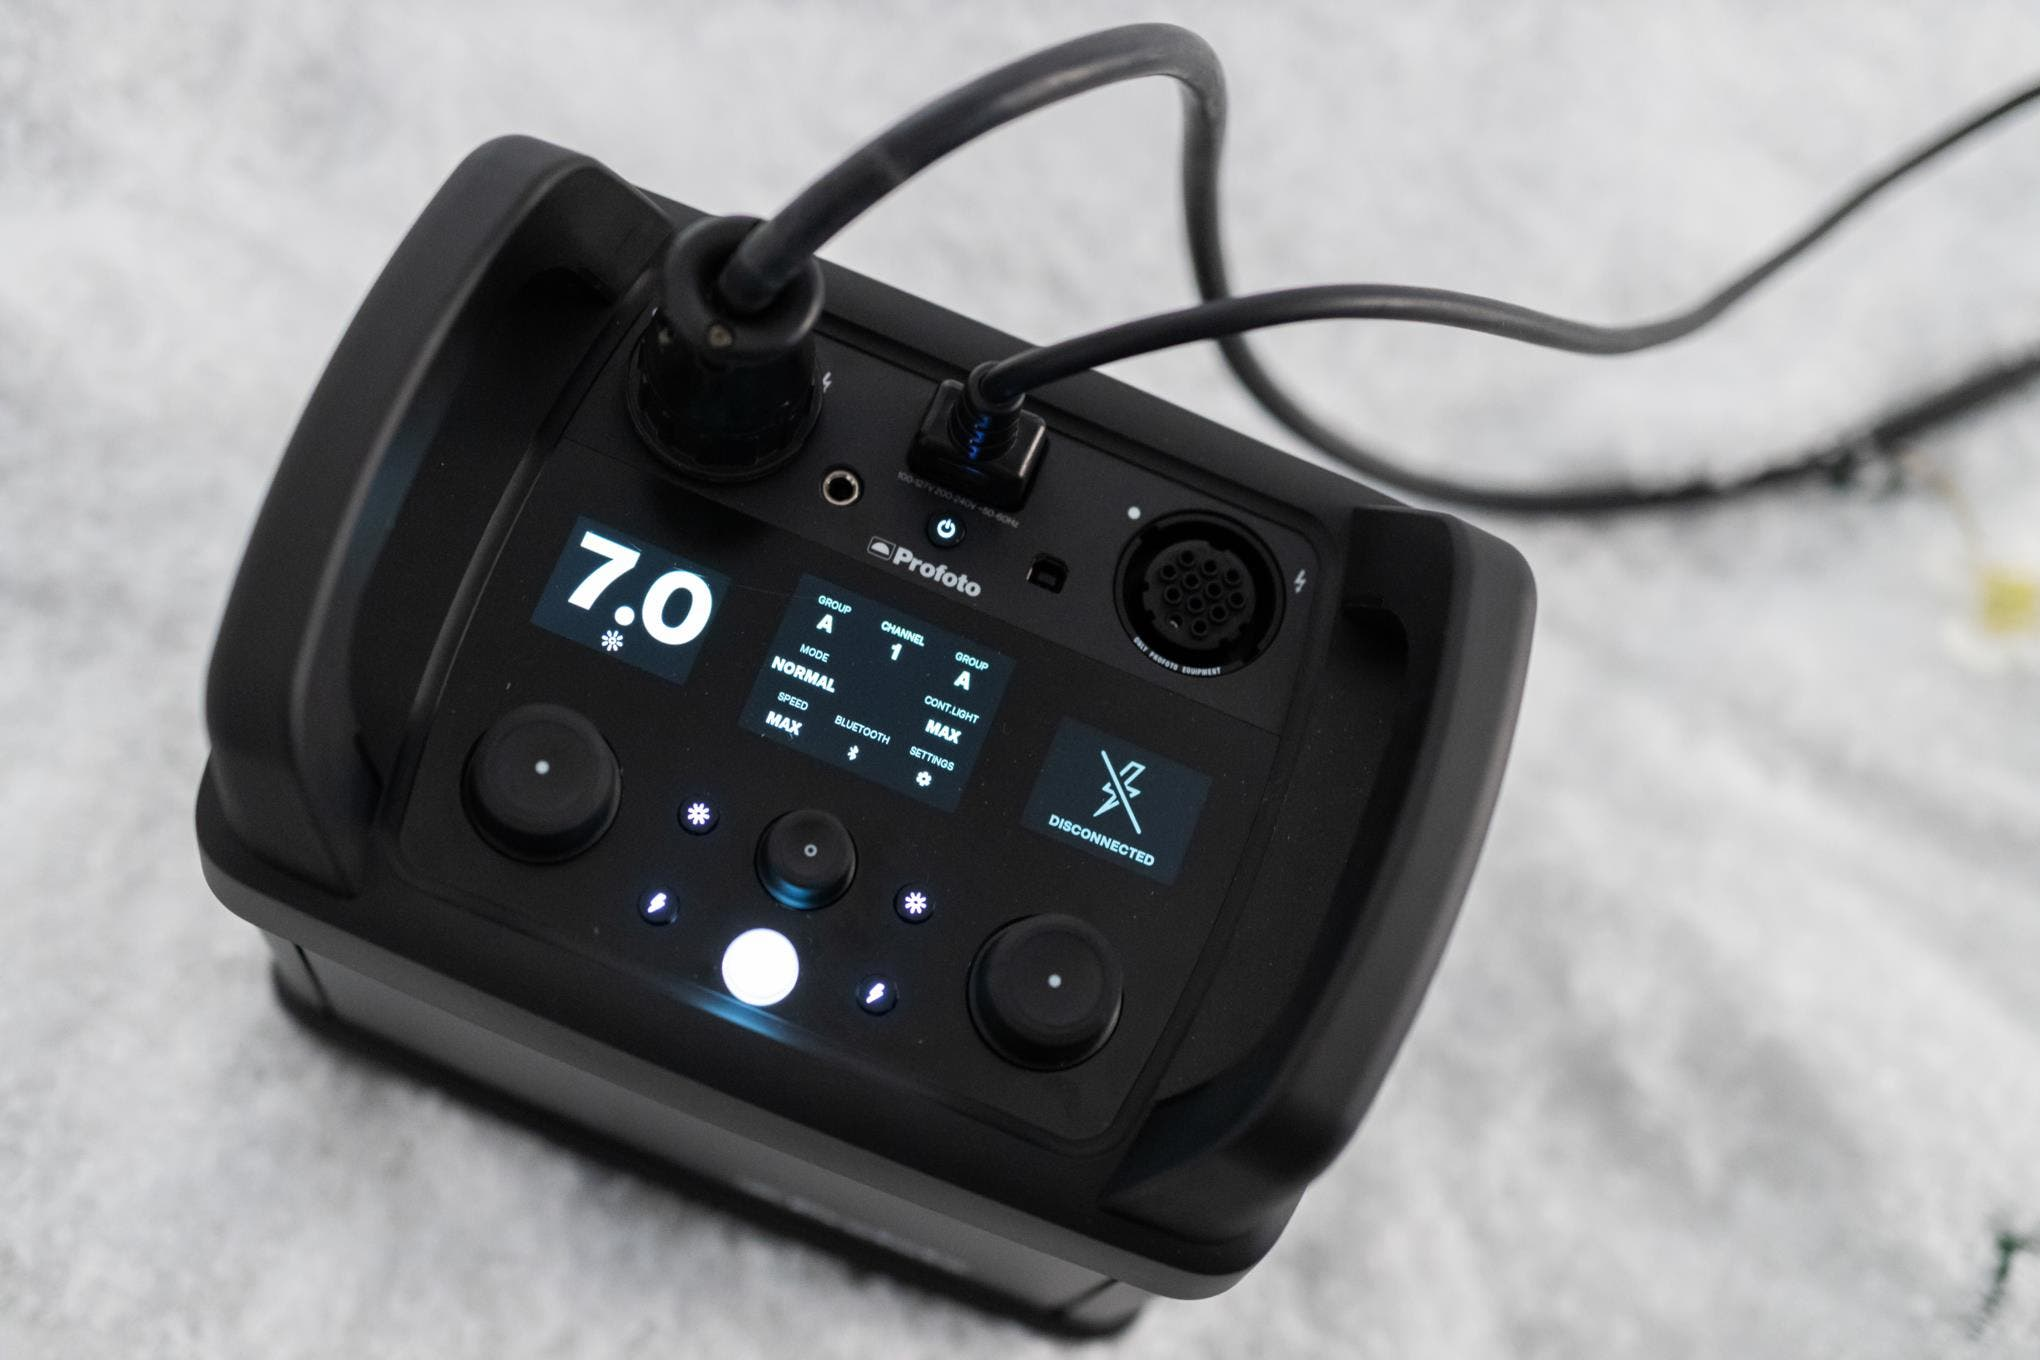 On The Powerful Profoto Pro 11 and Its Laughable Price Tag